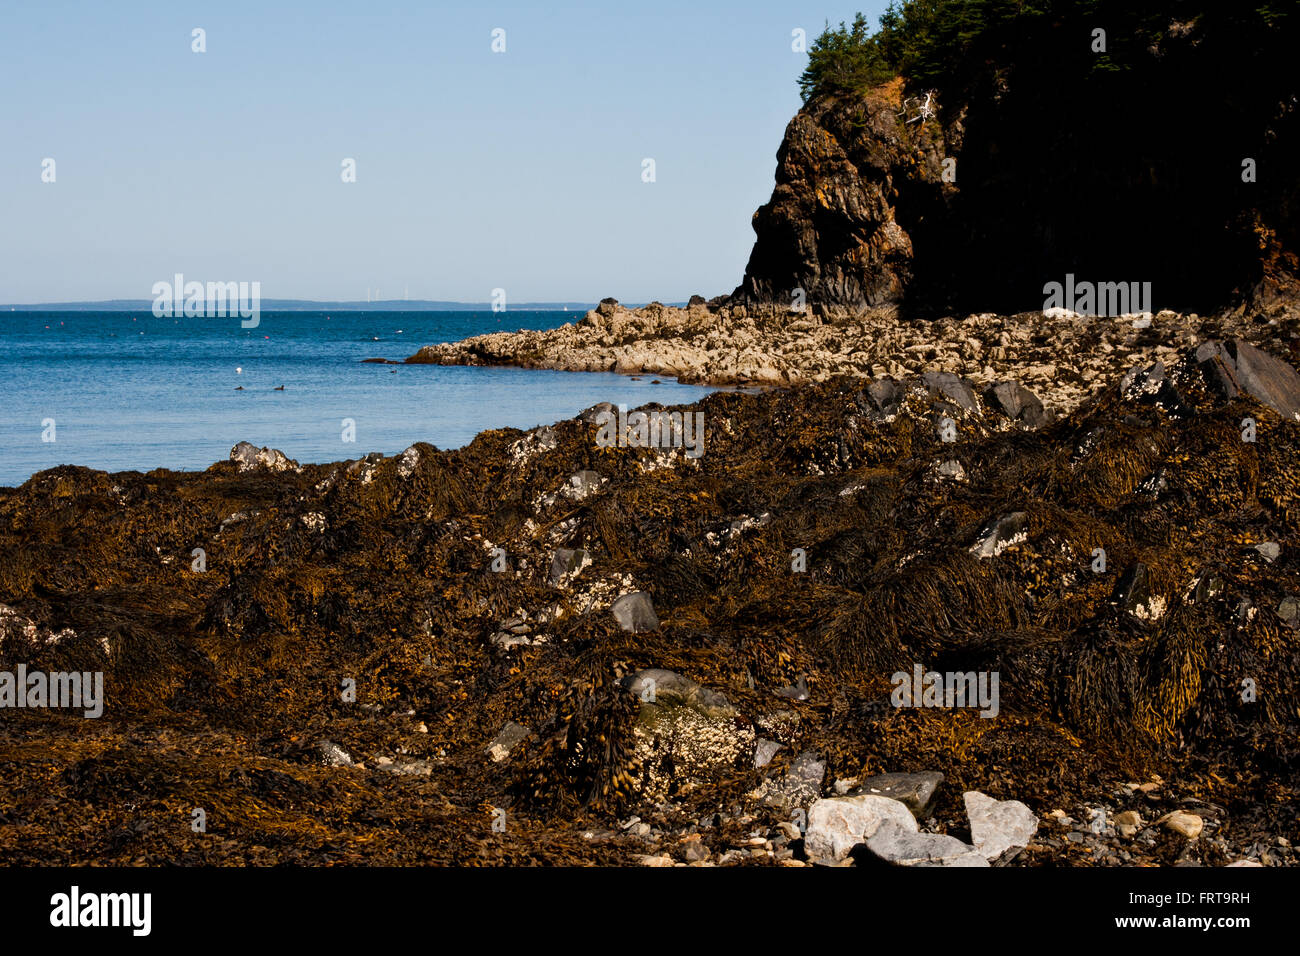 Jagged seabed along the coast of Camden Maine. - Stock Image